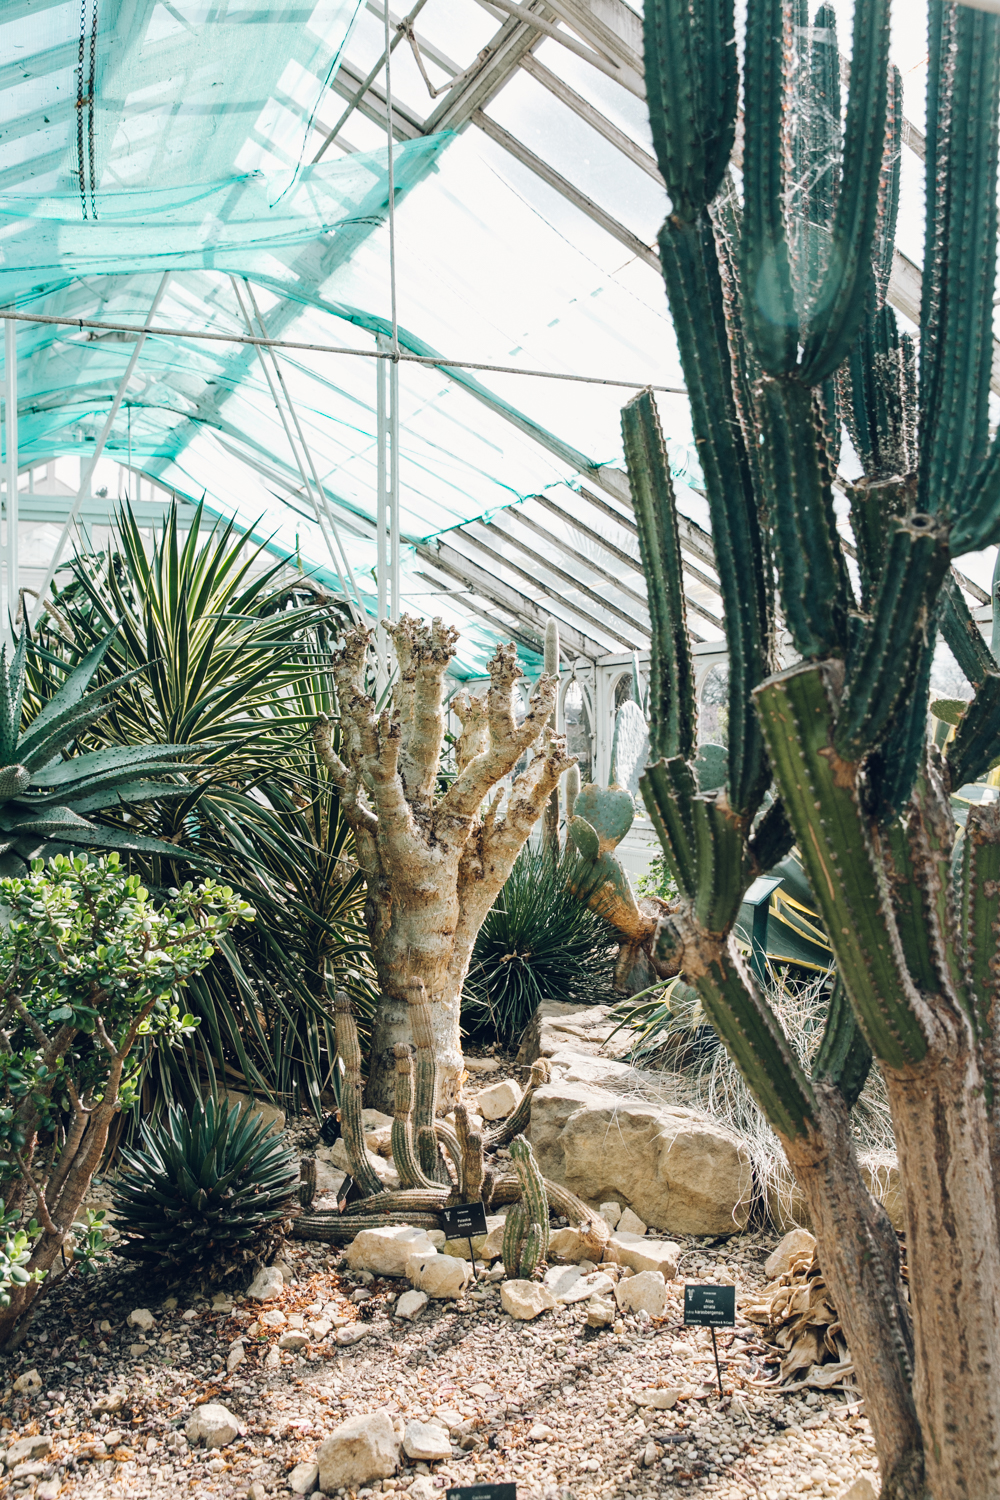 Cactus garden inside the glasshouse.